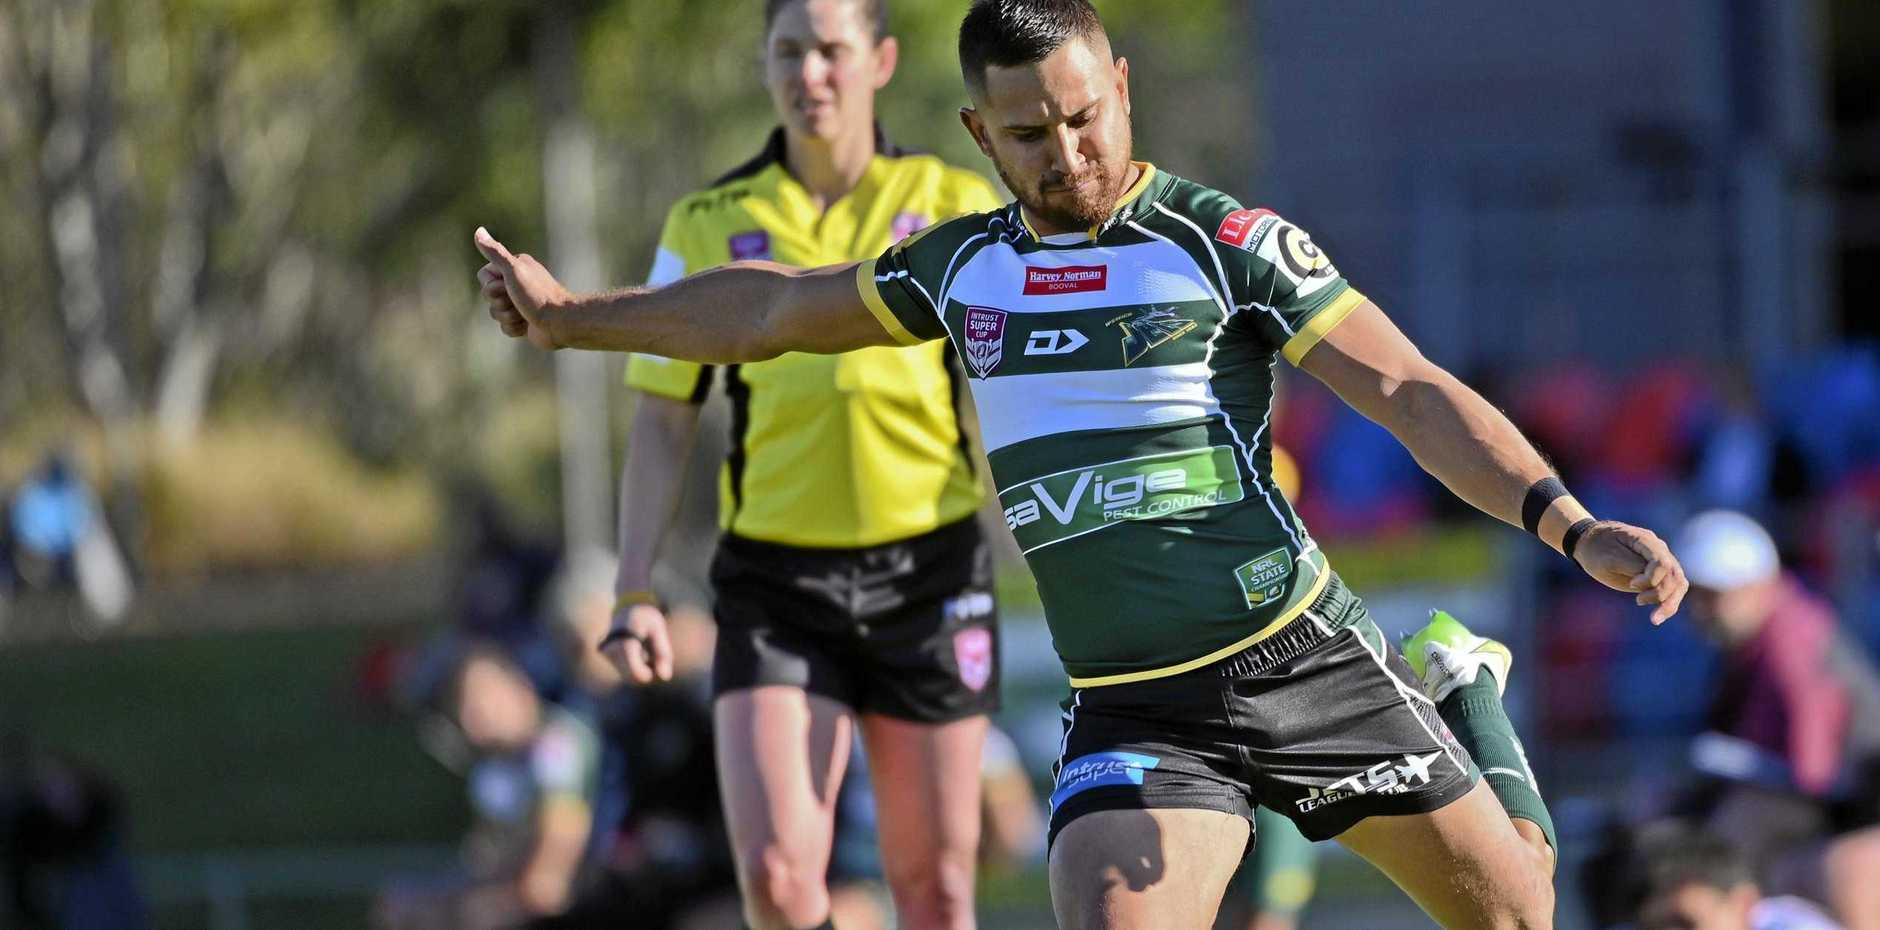 KICKING ON: Ipswich Jets back Marmin Barba and his teammates are looking to compile a convincing win on Saturday night after some recent near misses.